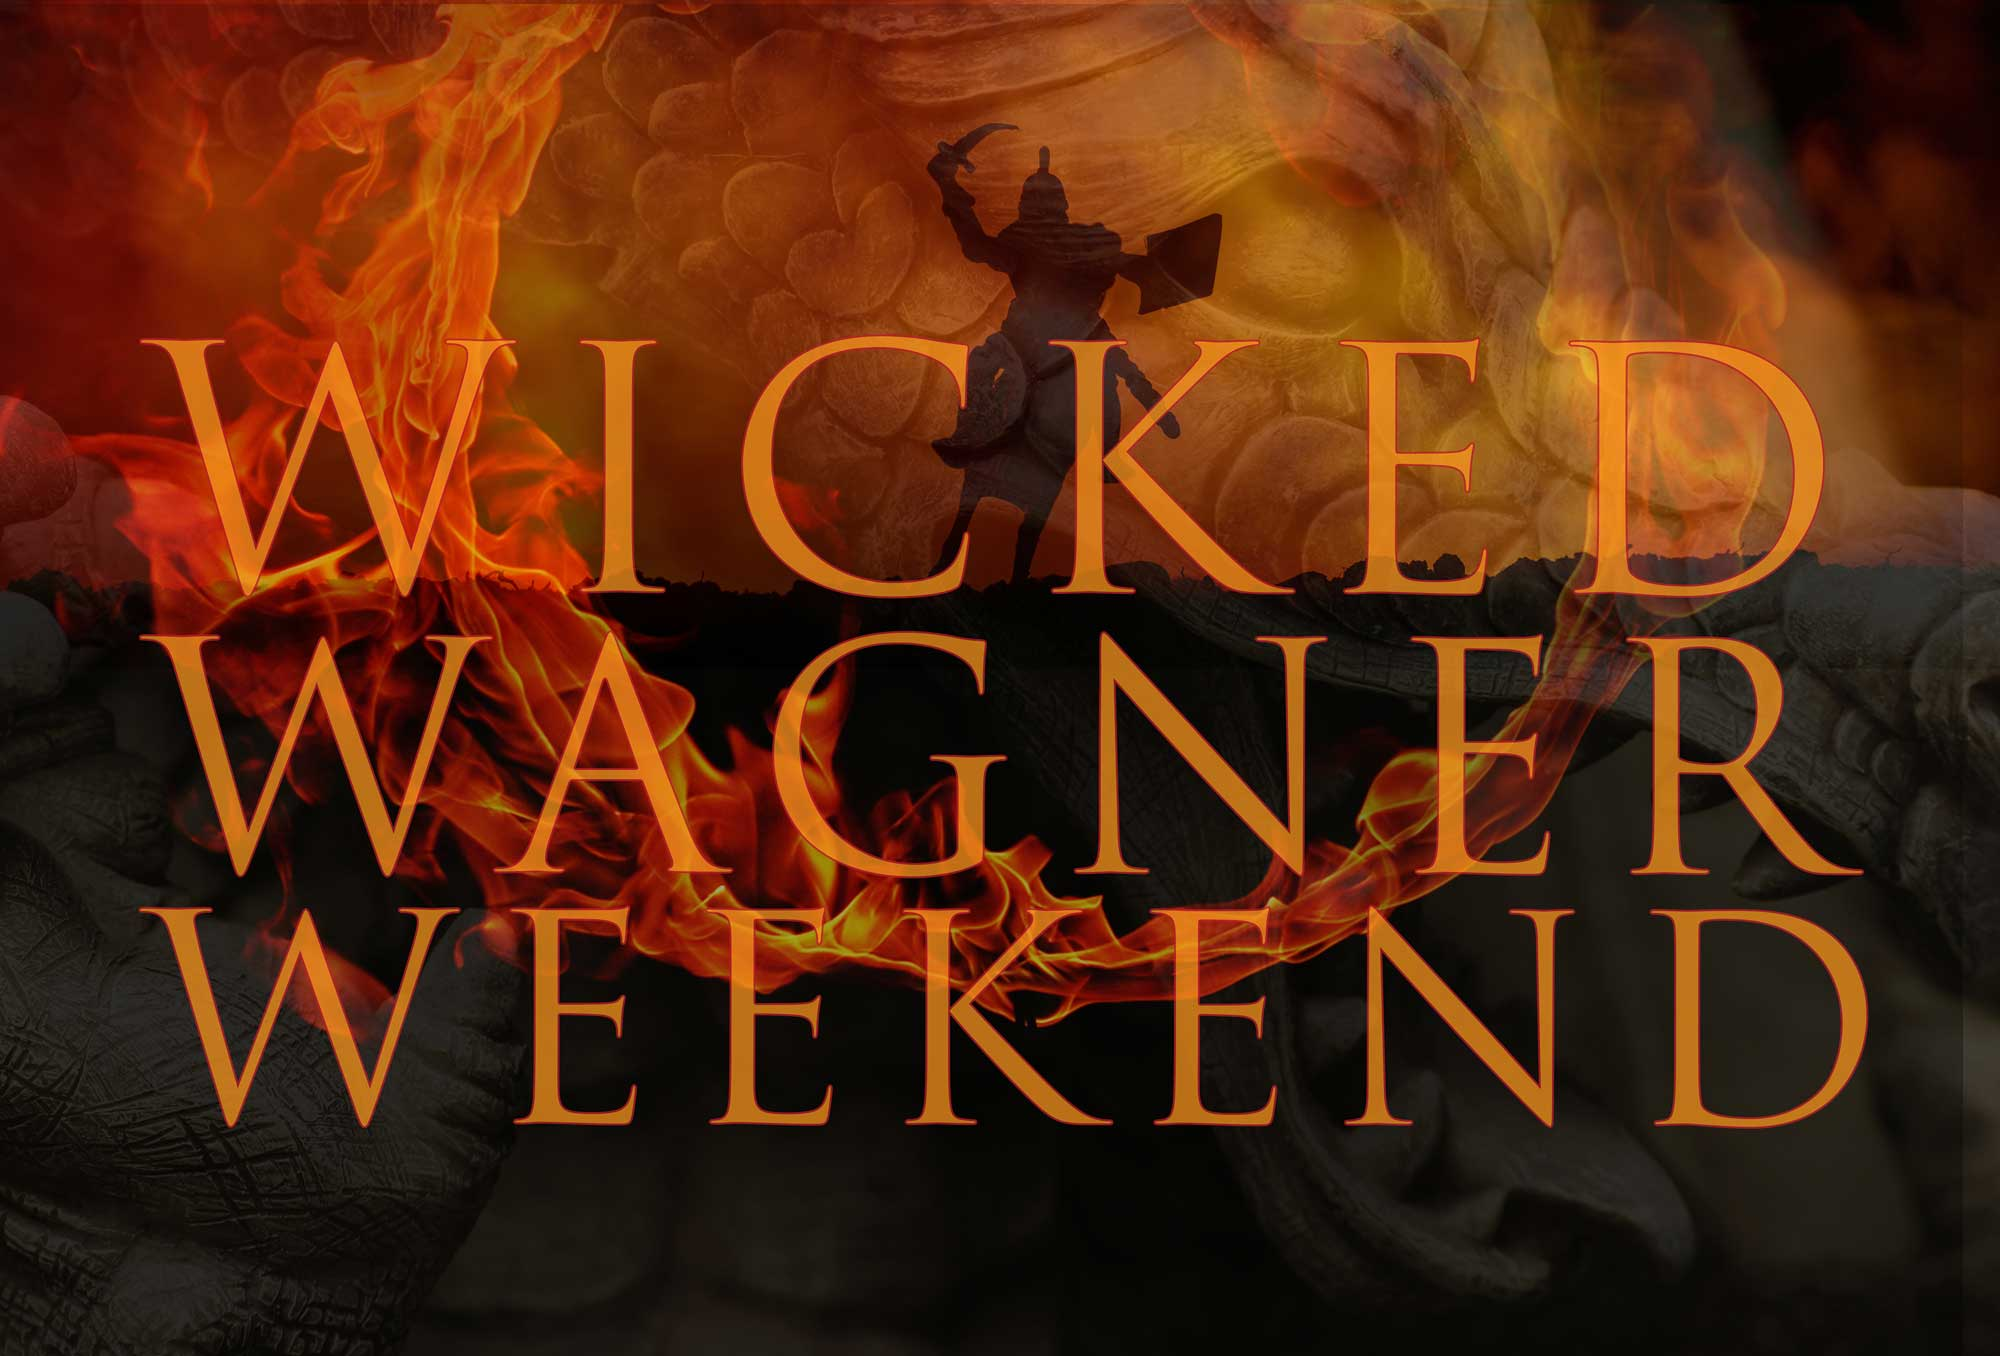 Wicked Wagner Weekend